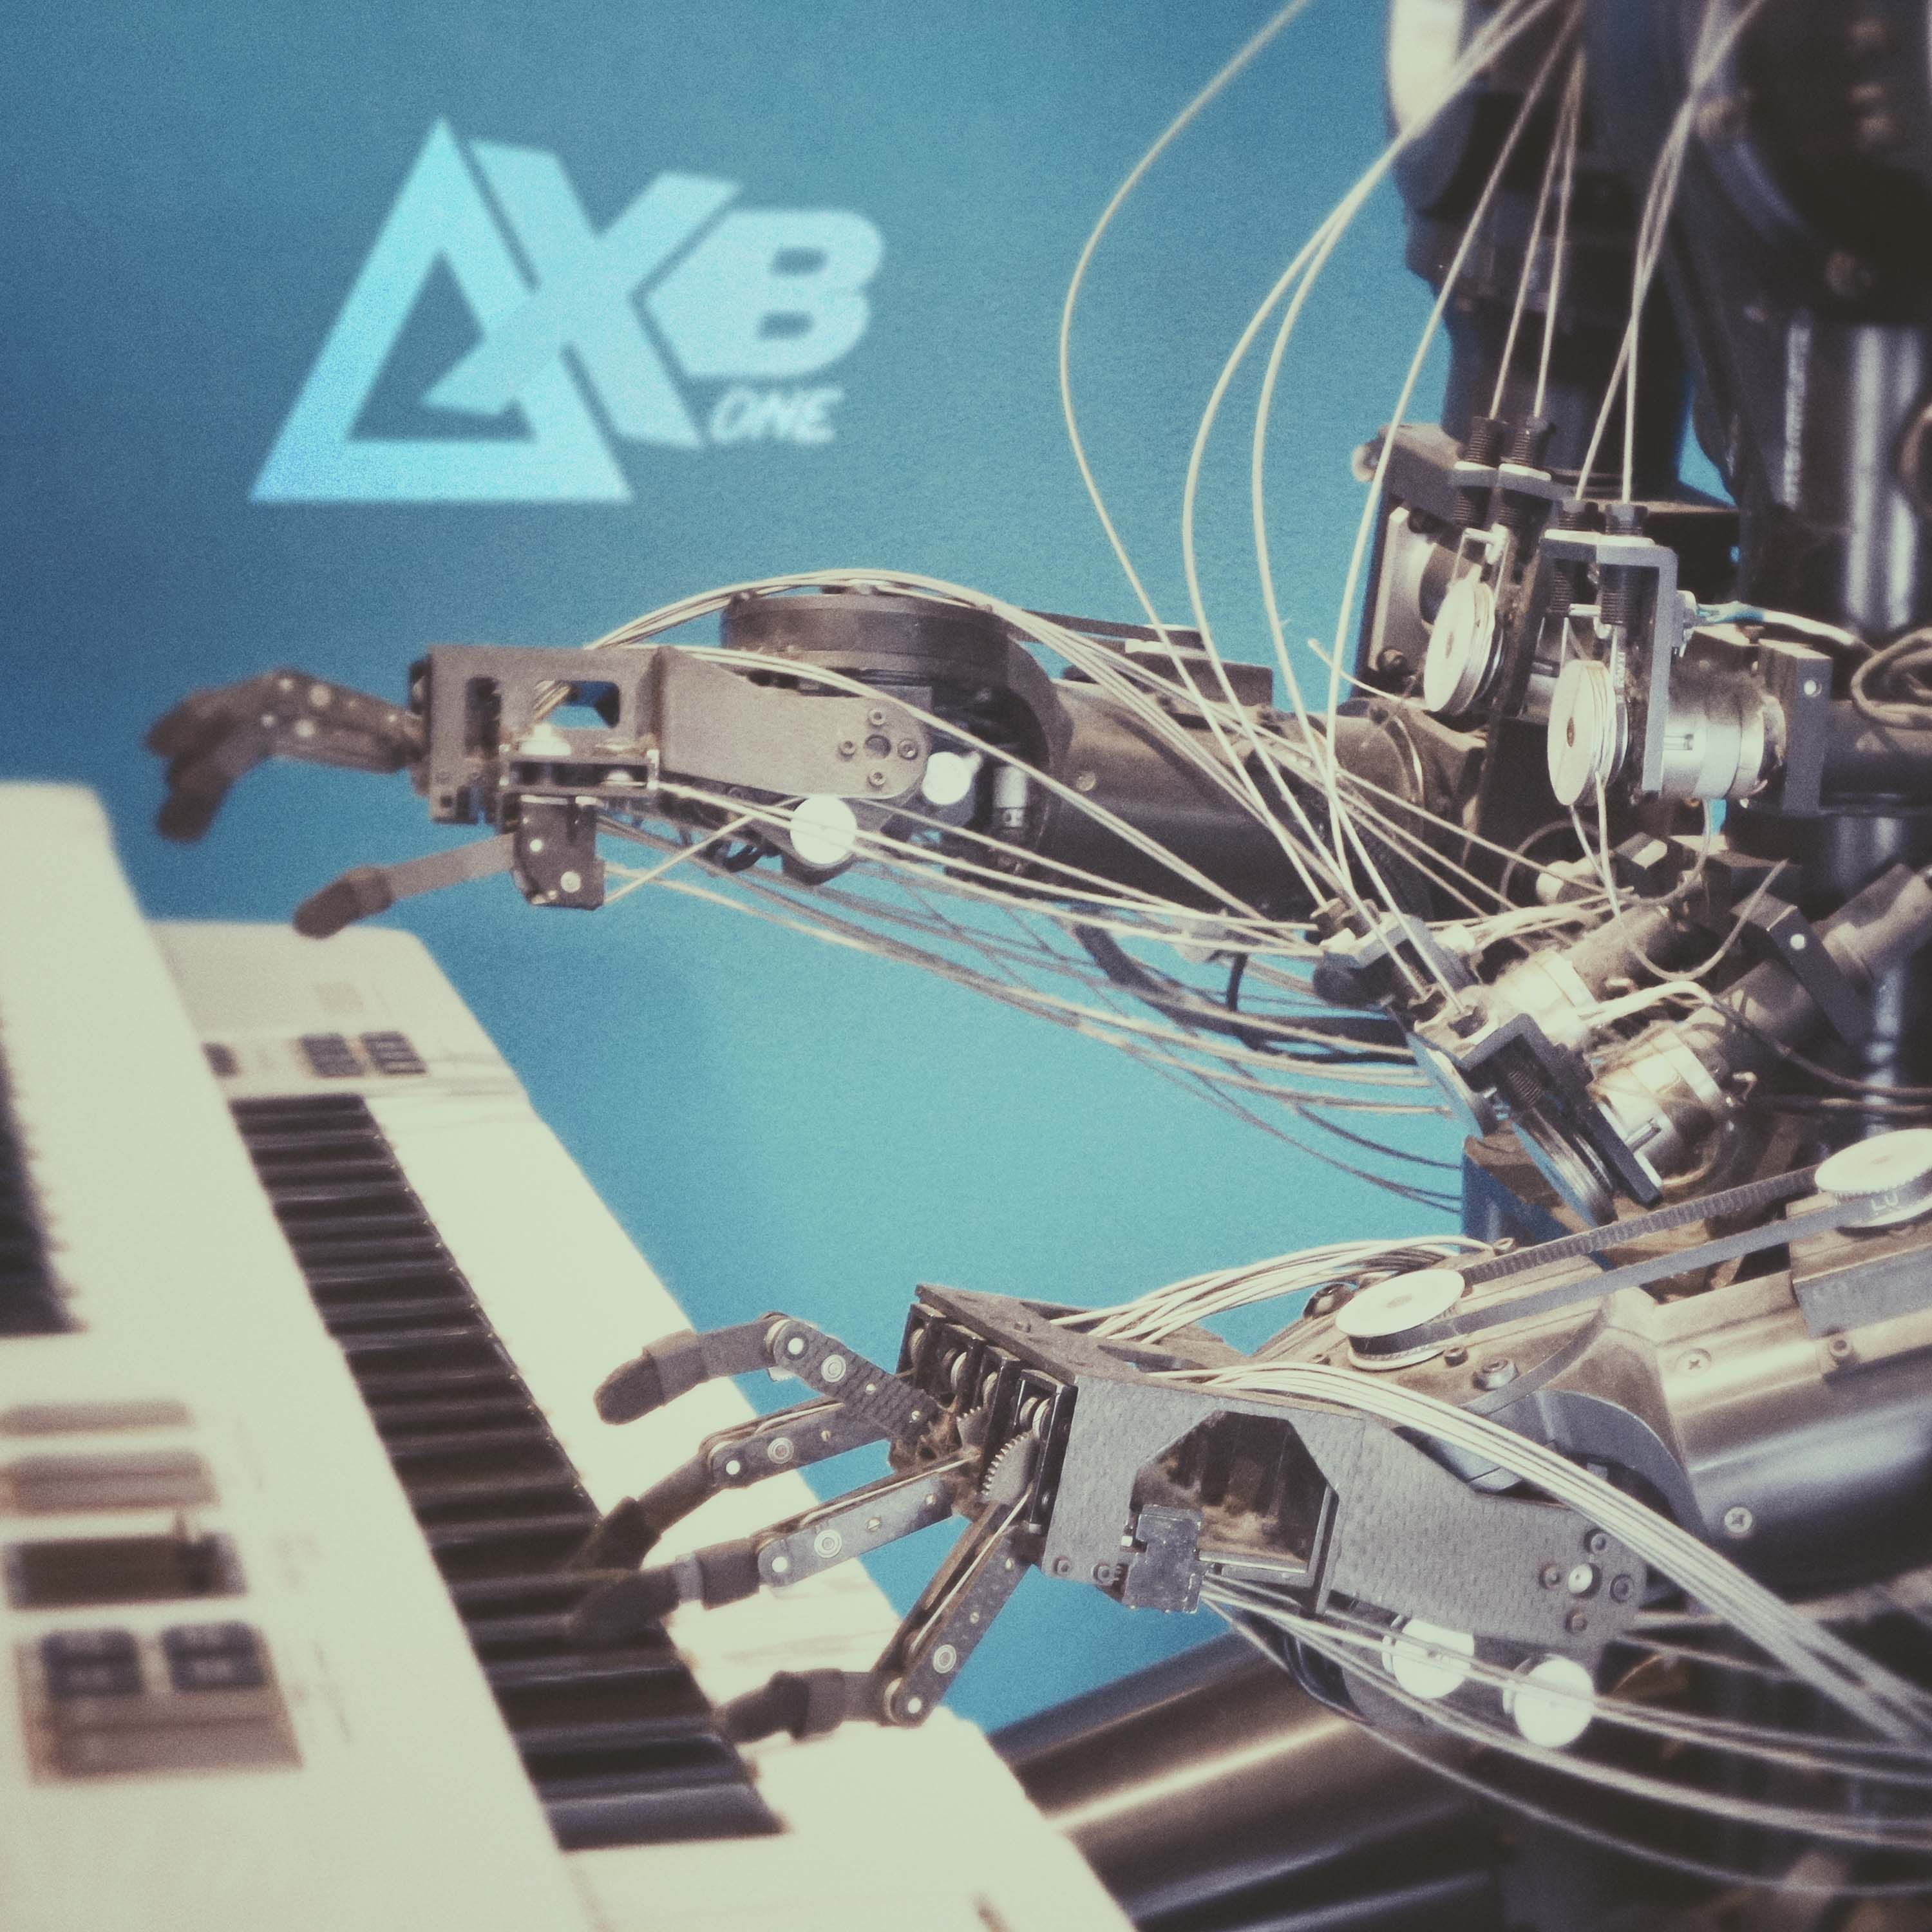 AxB one an aspirant musician came from the 80s to make